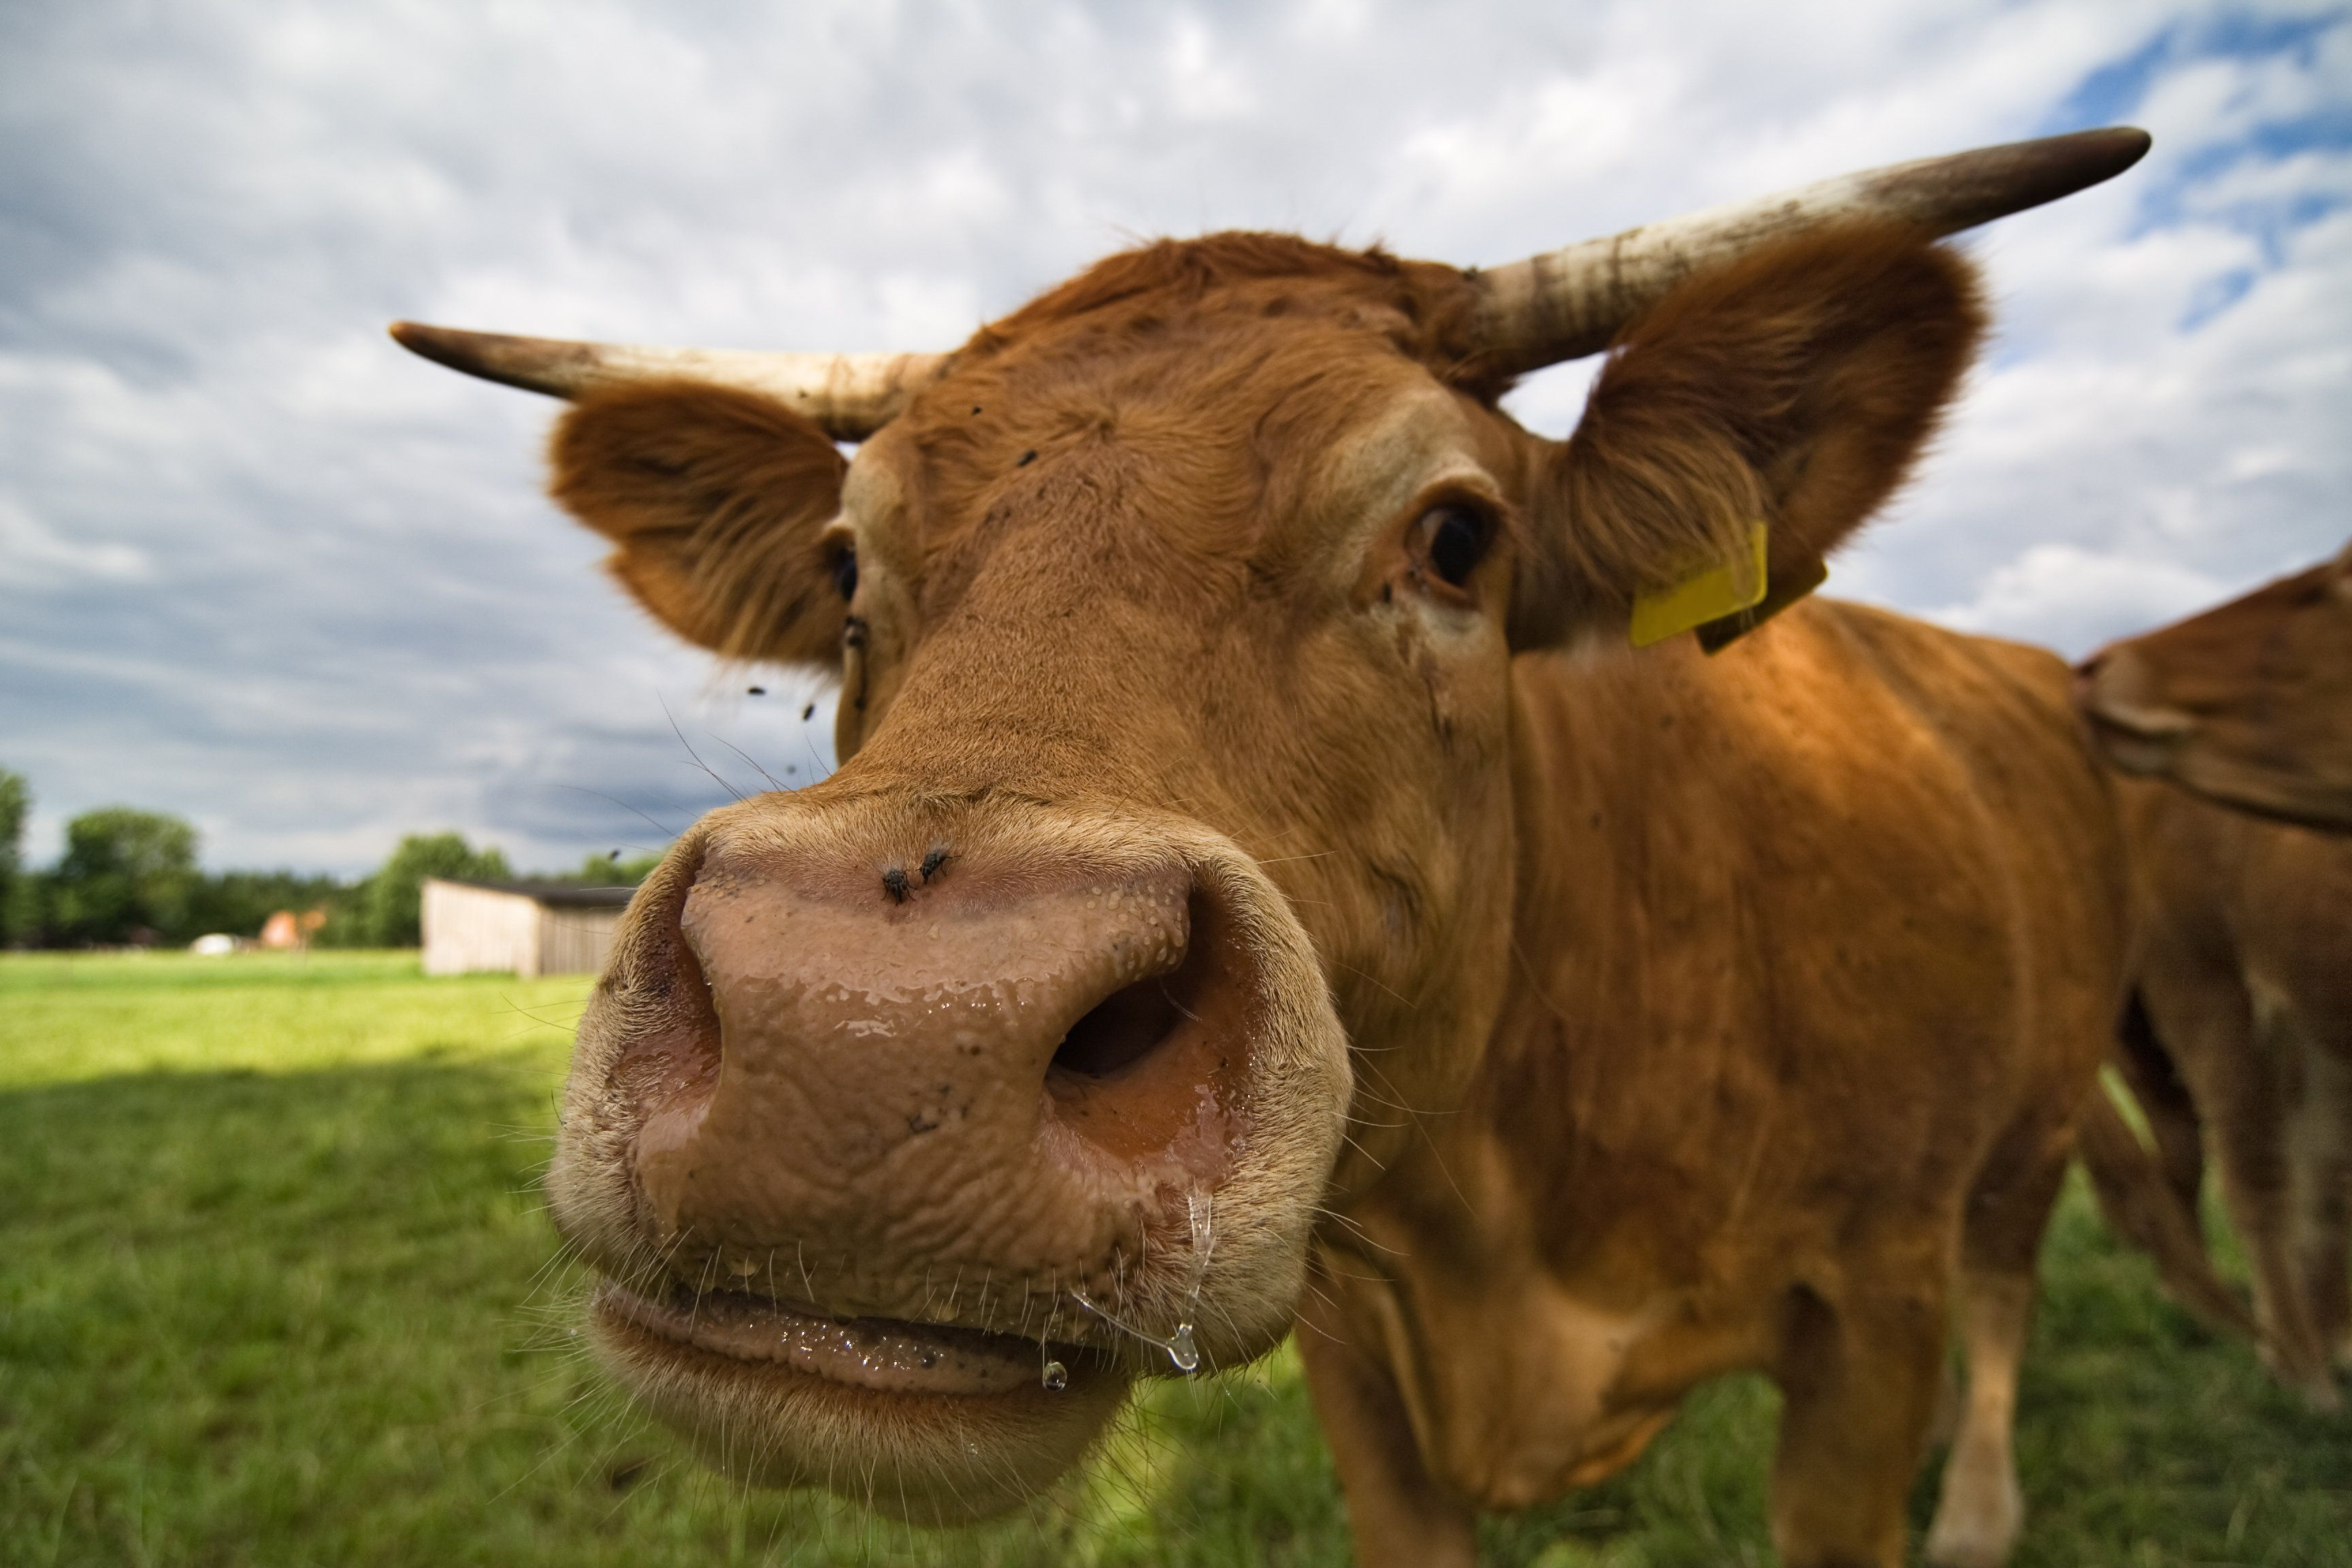 Badass Cow Takes Down Helicopter And Walks Off Like A